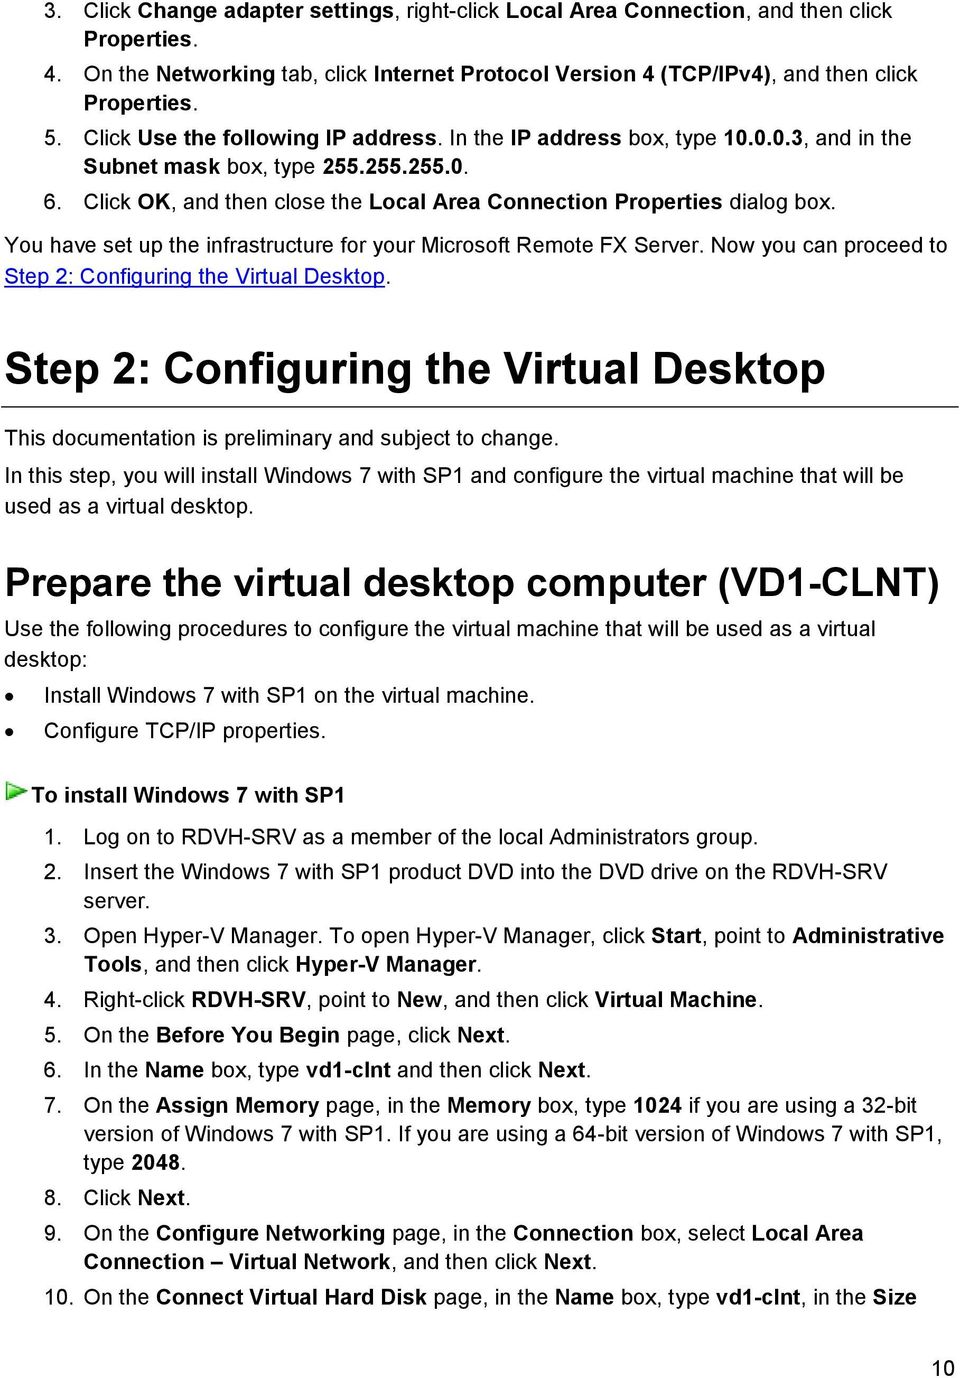 You have set up the infrastructure for your Microsoft Remote FX Server. Now you can proceed to Step 2: Configuring the Virtual Desktop.